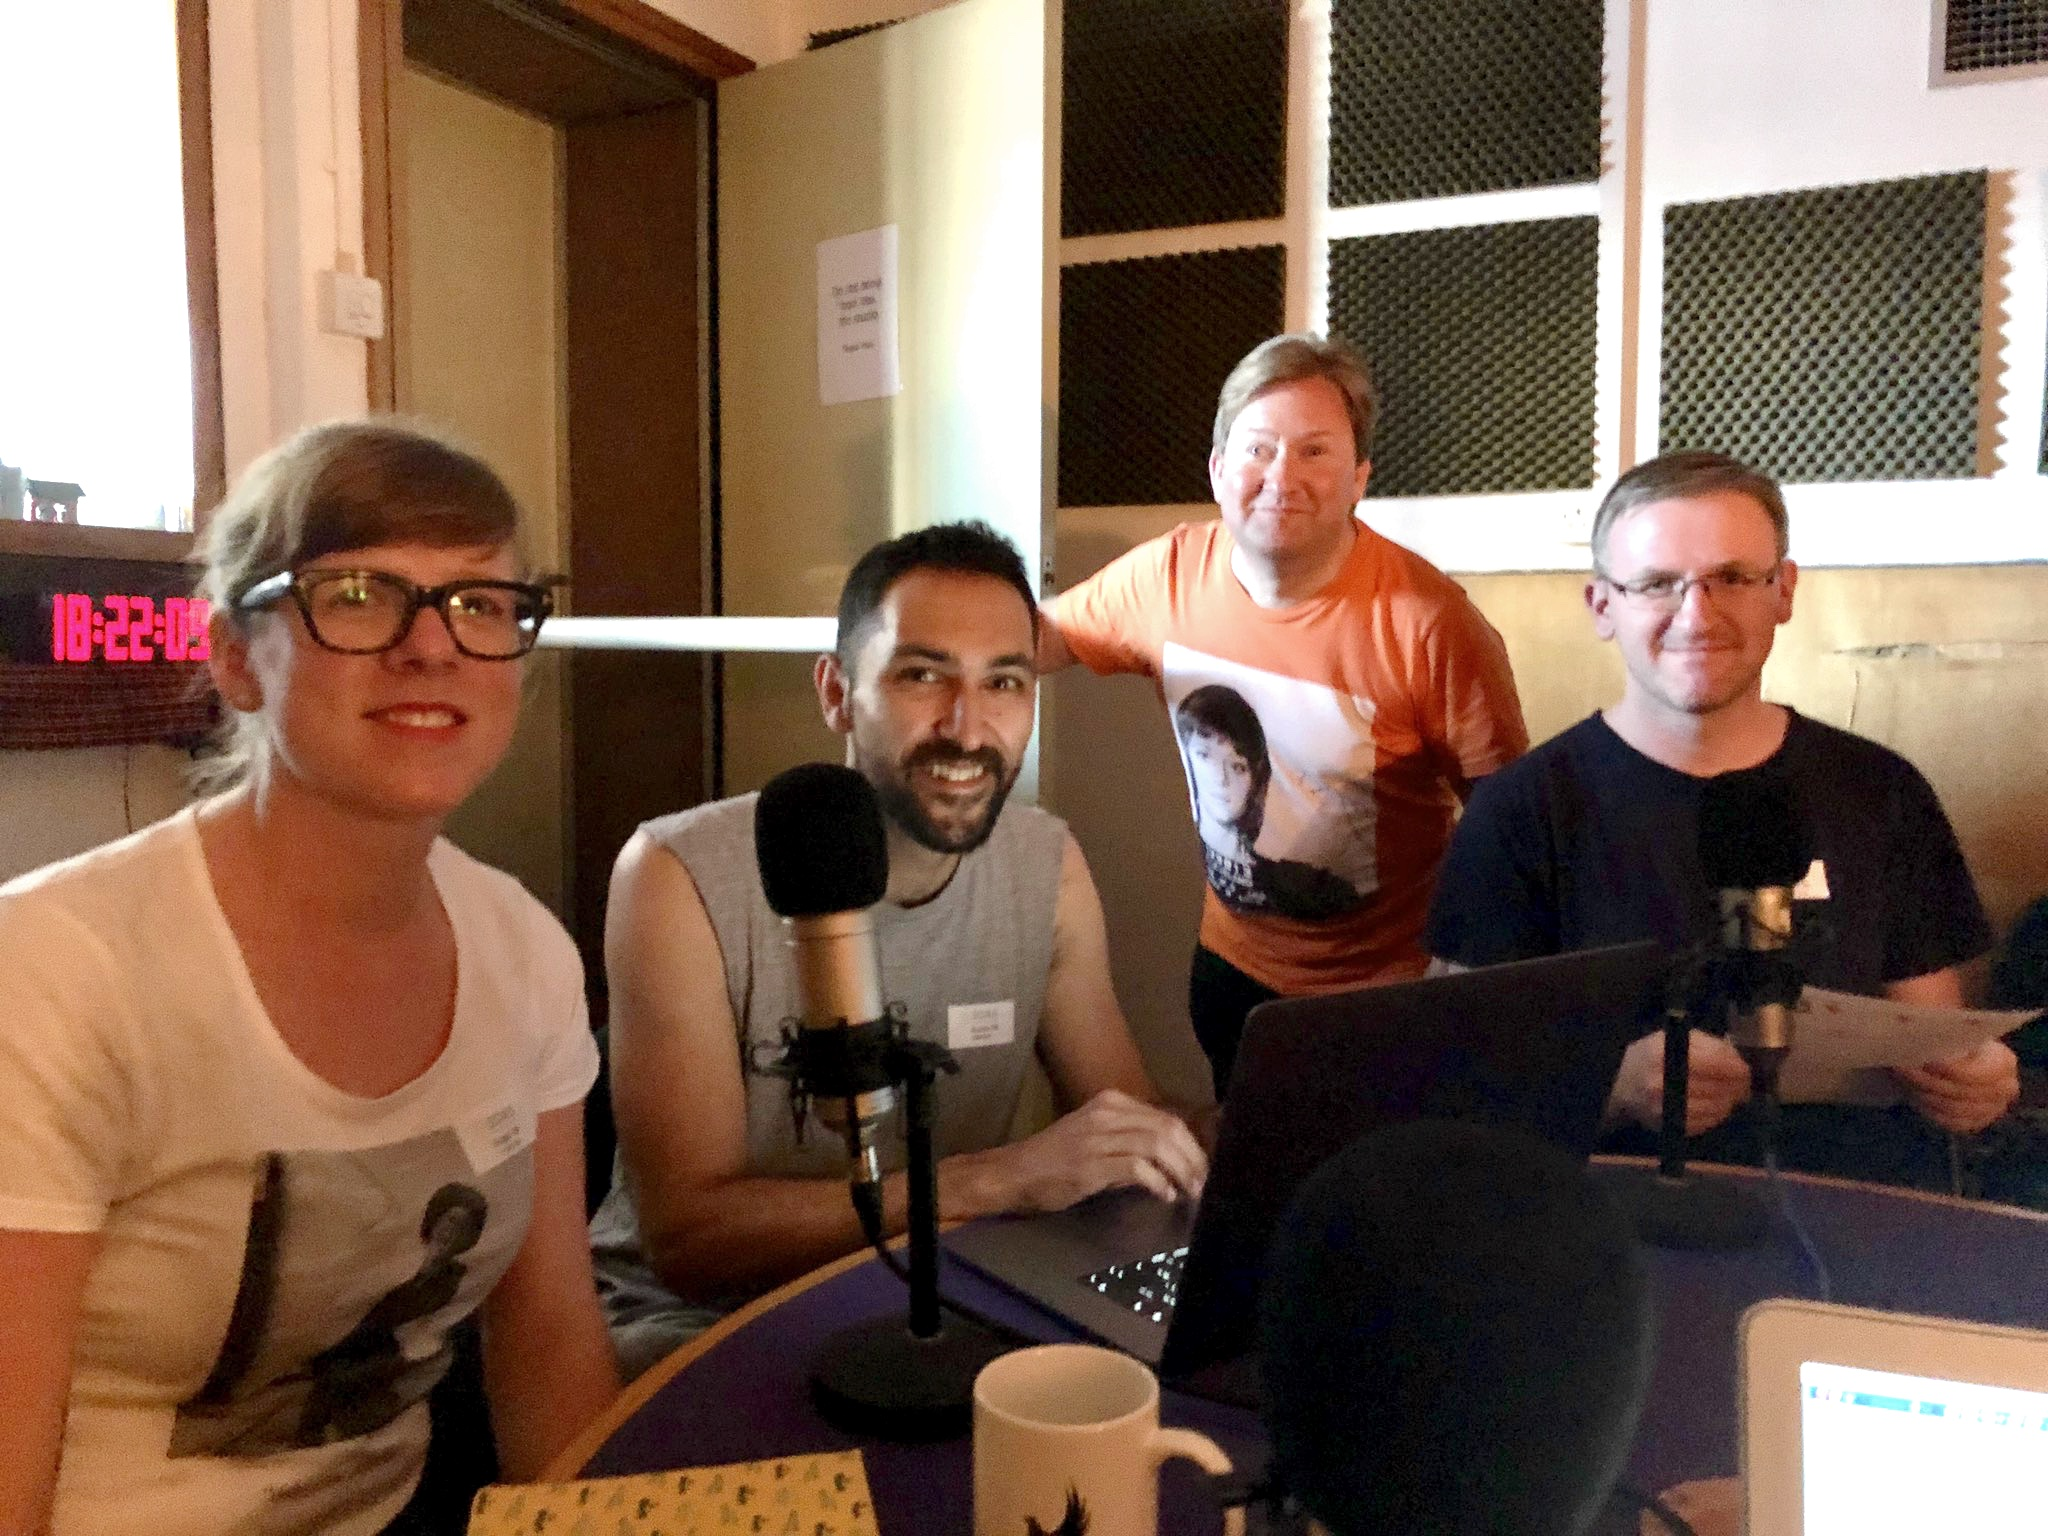 Eloise Ross, Ian Mantgani, Peter Baran and Philip Concannon in the podcast studio.